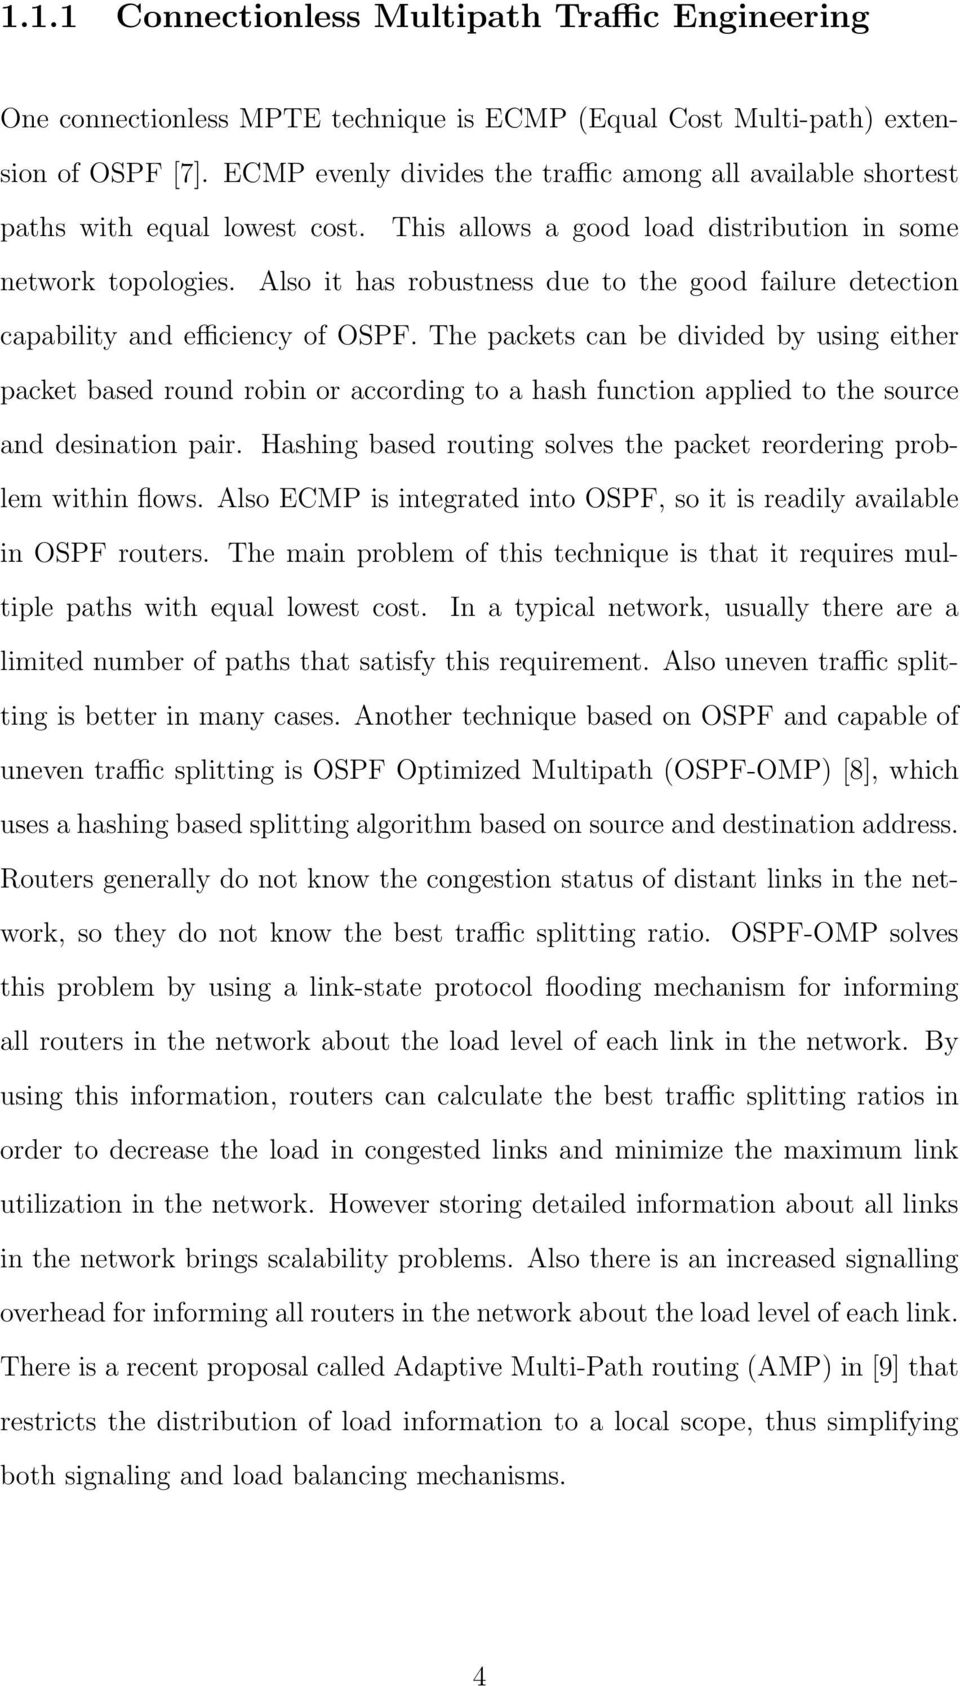 Also it has robustness due to the good failure detection capability and efficiency of OSPF.